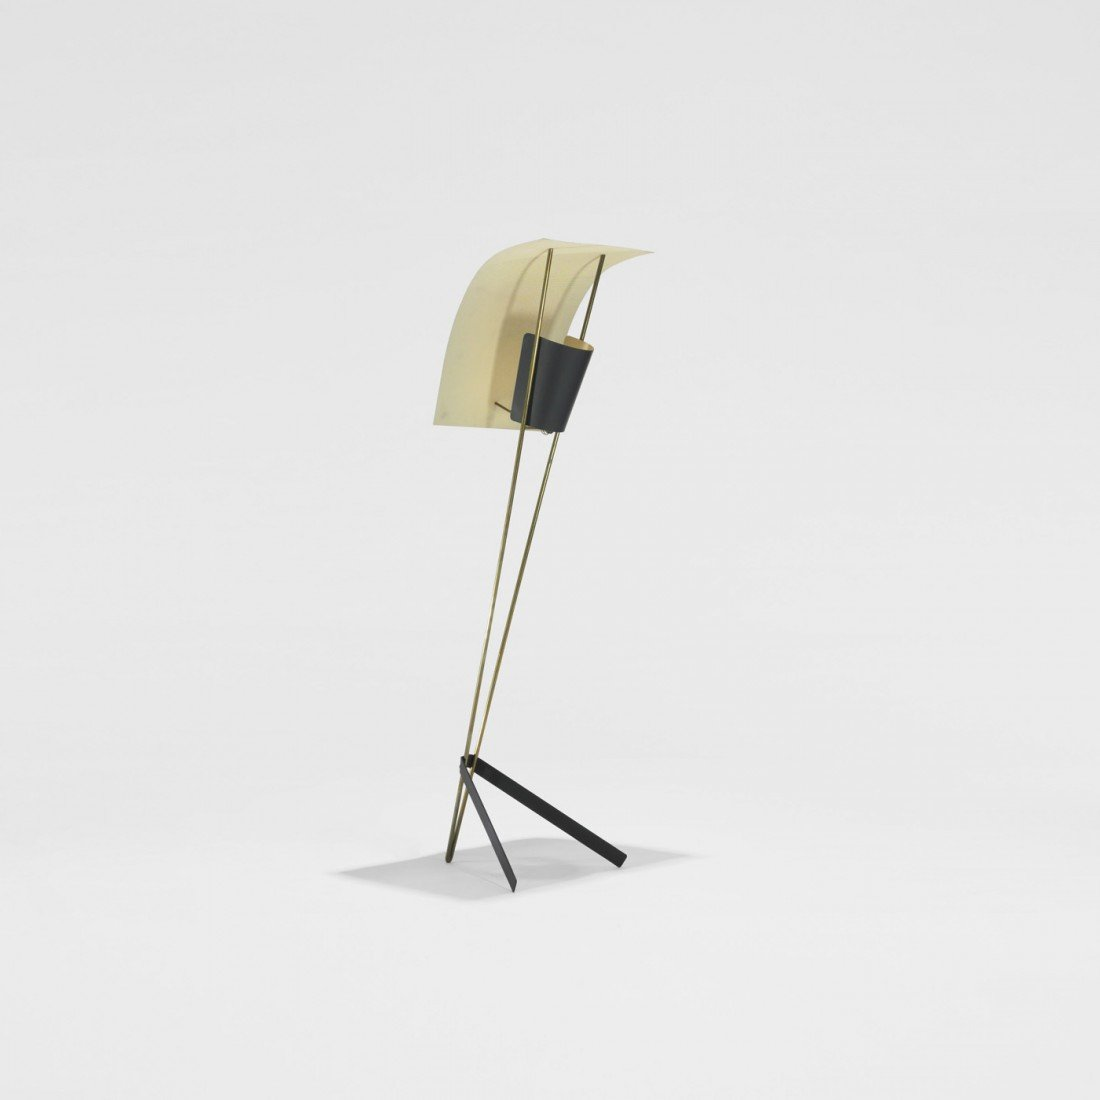 168: Pierre Guariche Kite floor lamp